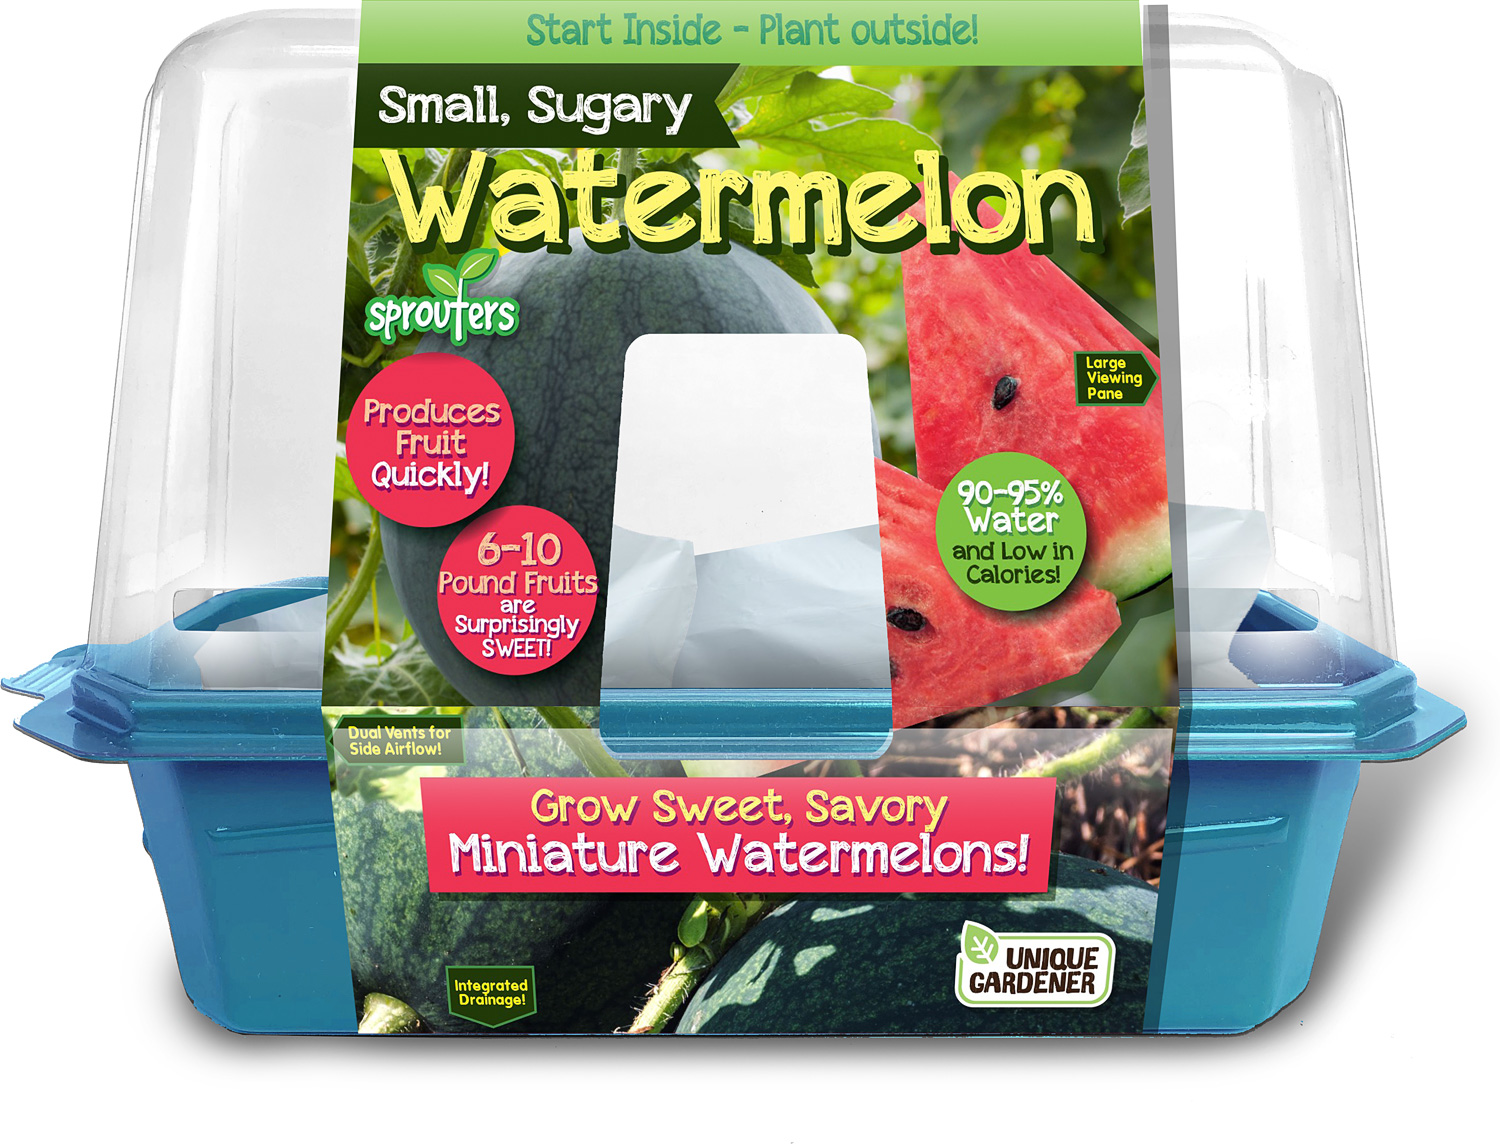 Small, Sugary Watermelon